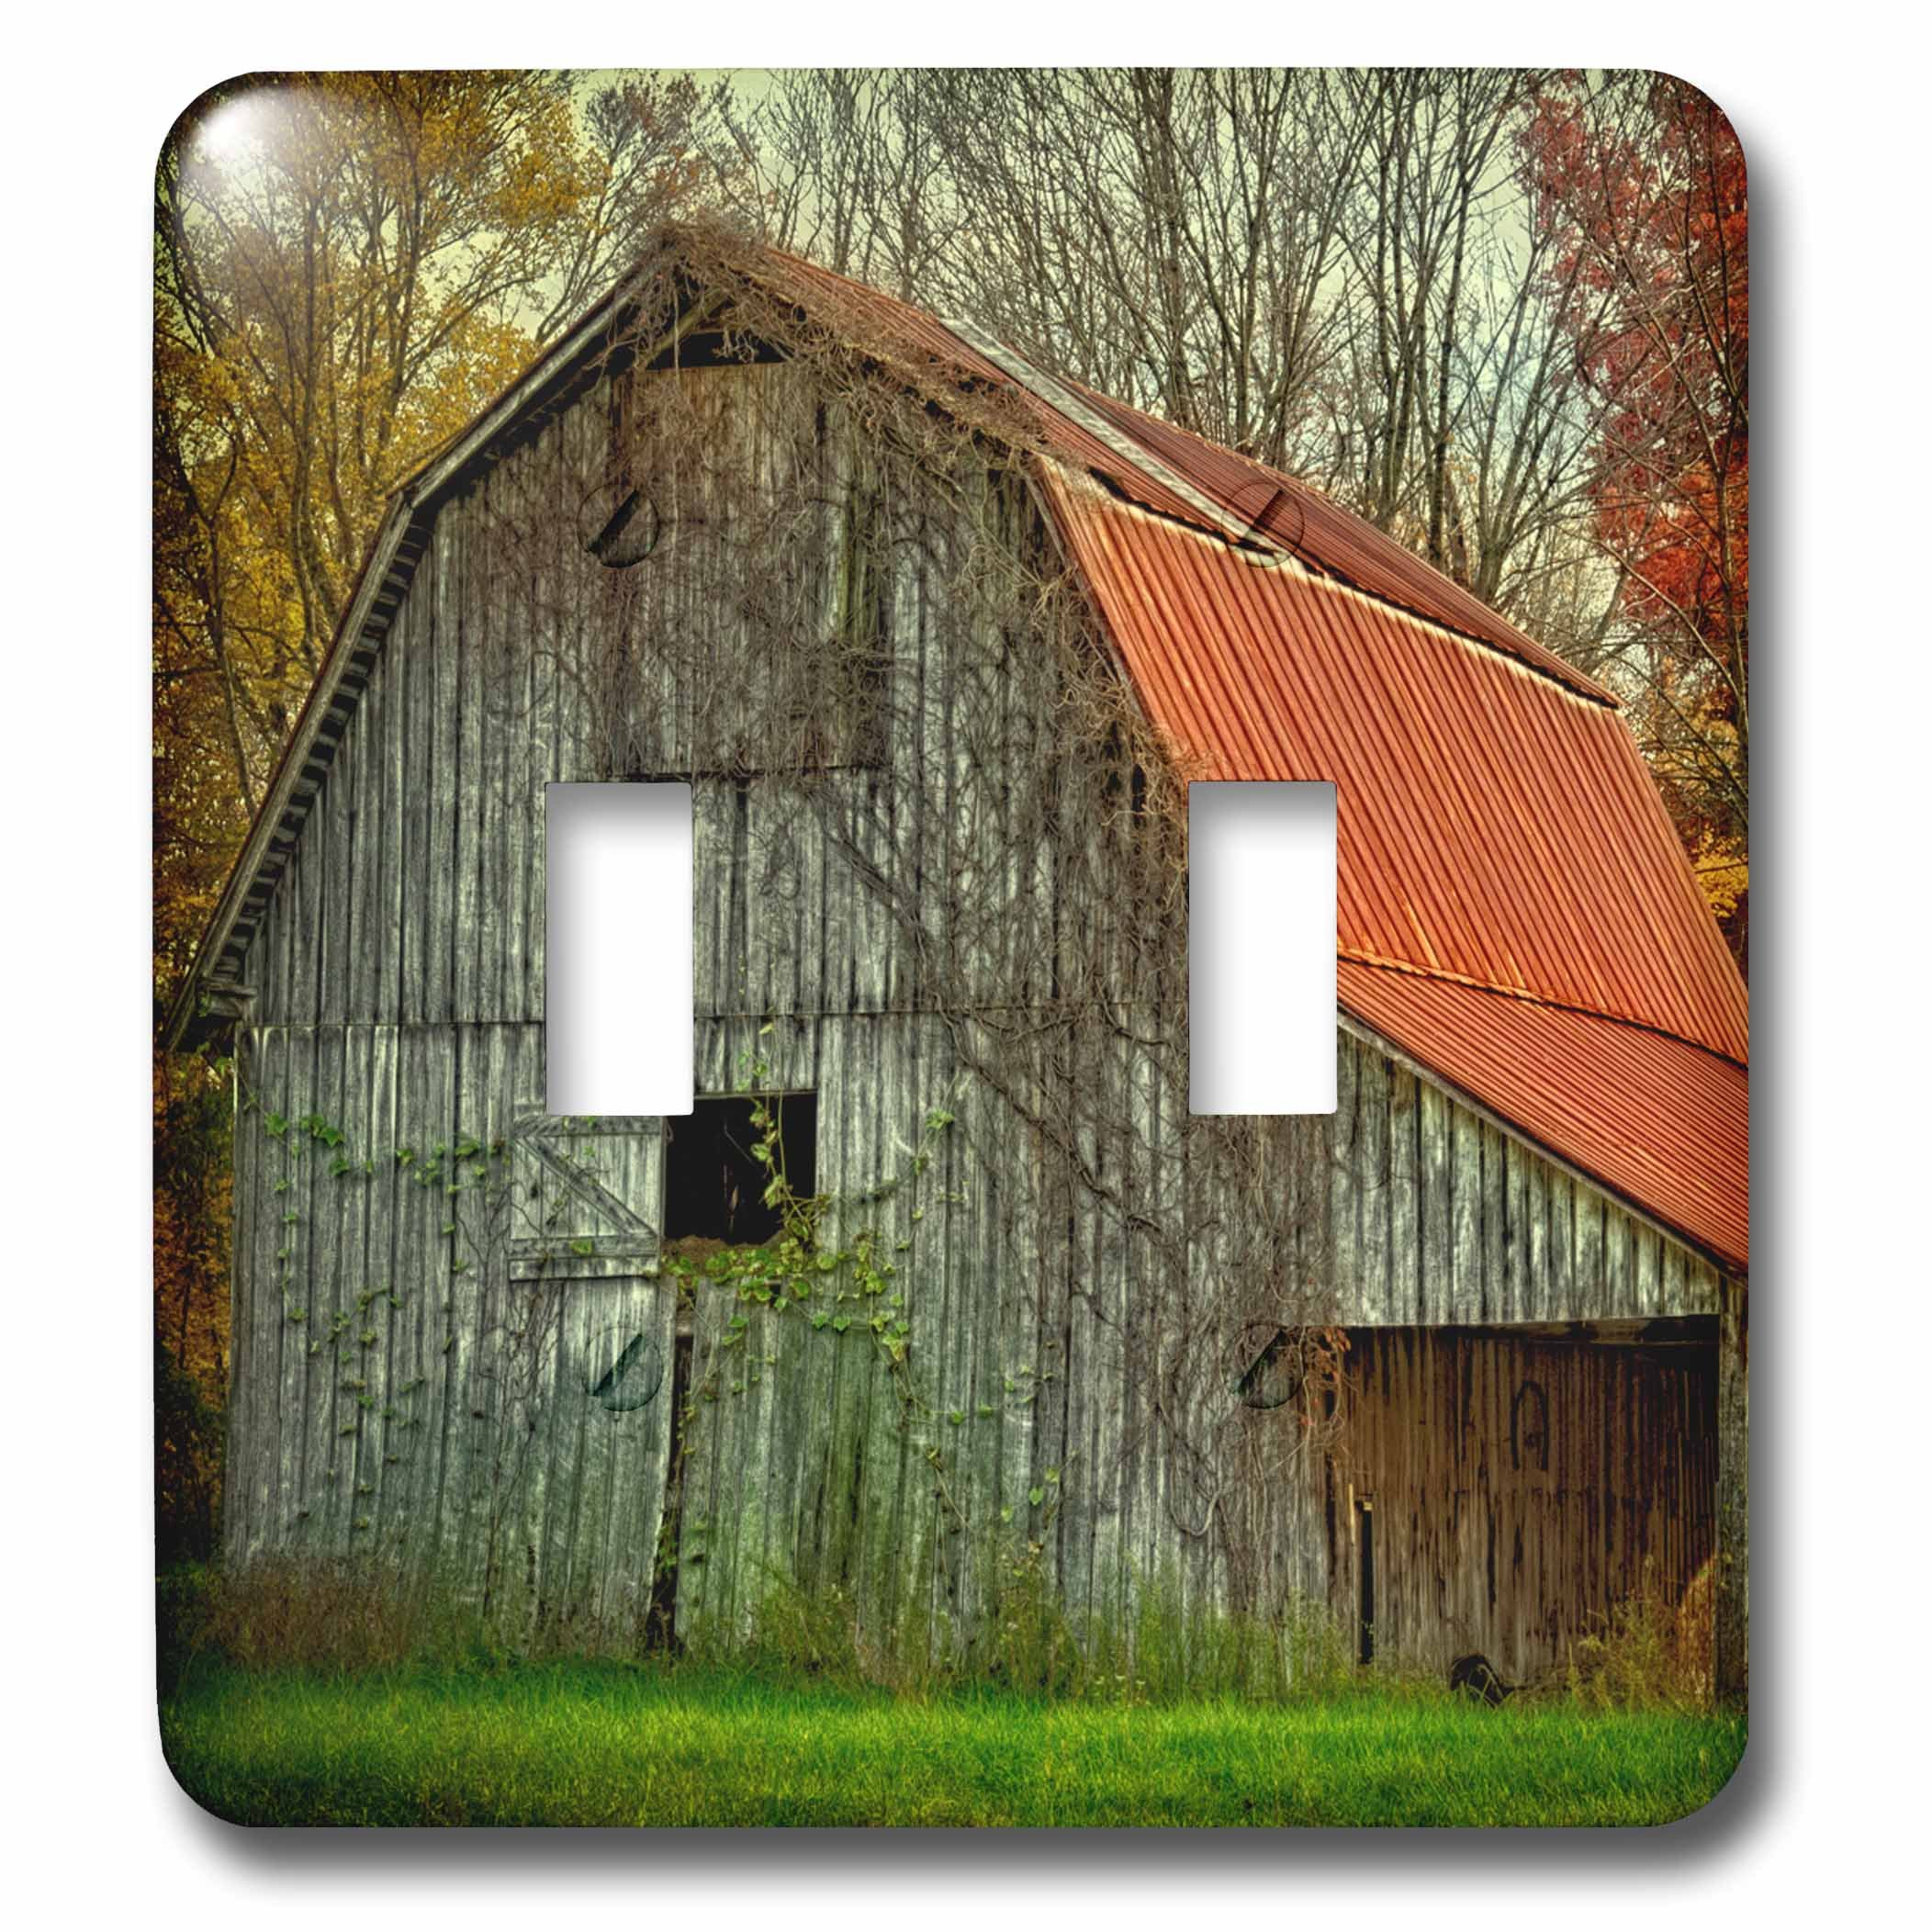 Danita Delimont - Rural - USA, Indiana. rural landscape, vine-covered barn with red roof - Light Switch Covers - double toggle switch (lsp_230816_2) by 3dRose